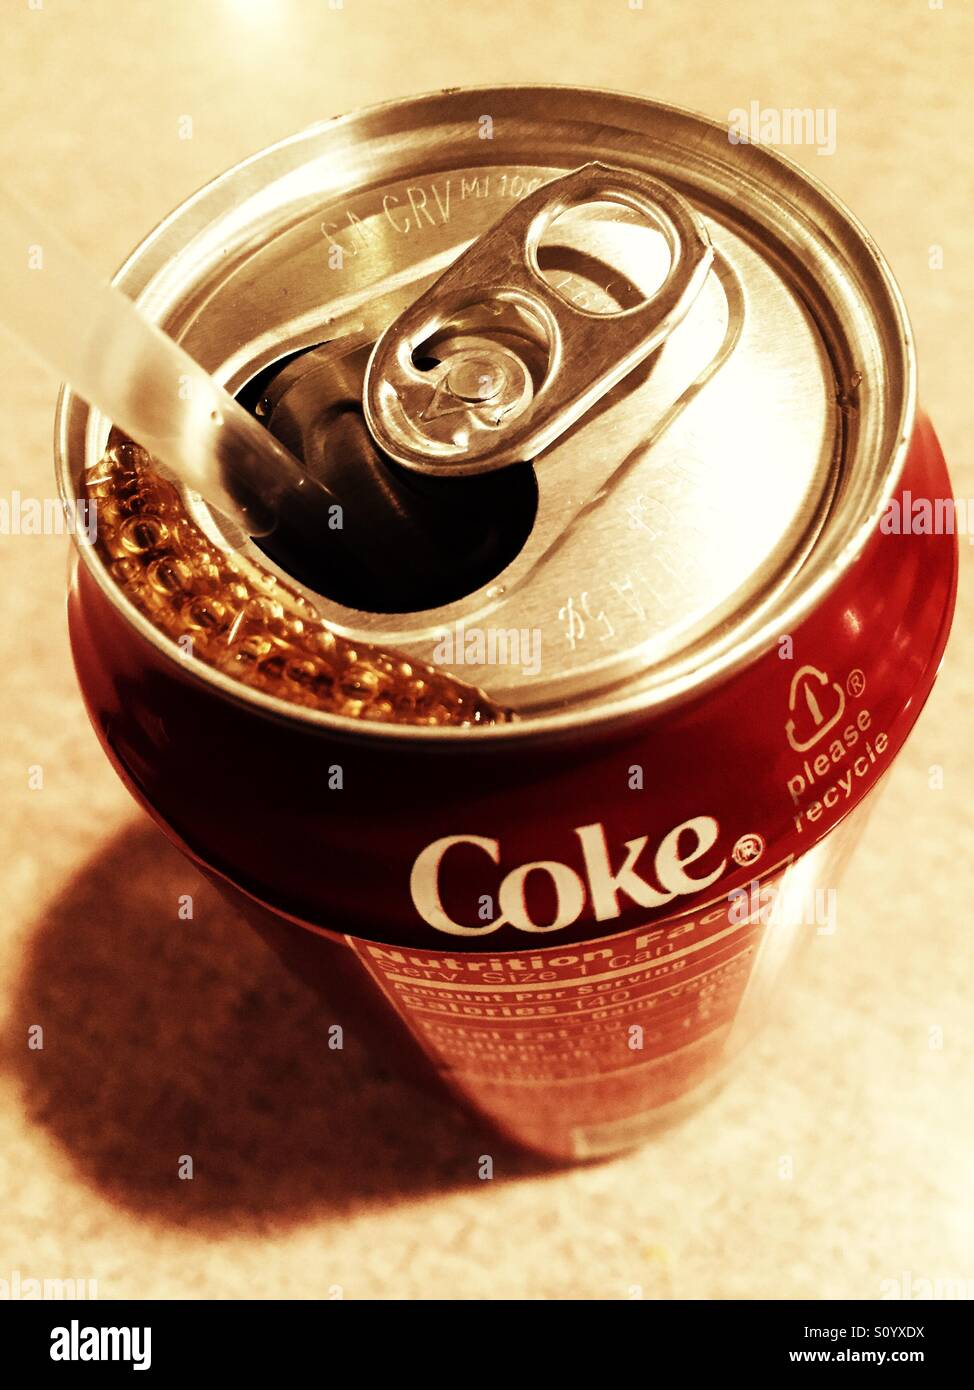 Coke can opened and shot from above - Stock Image